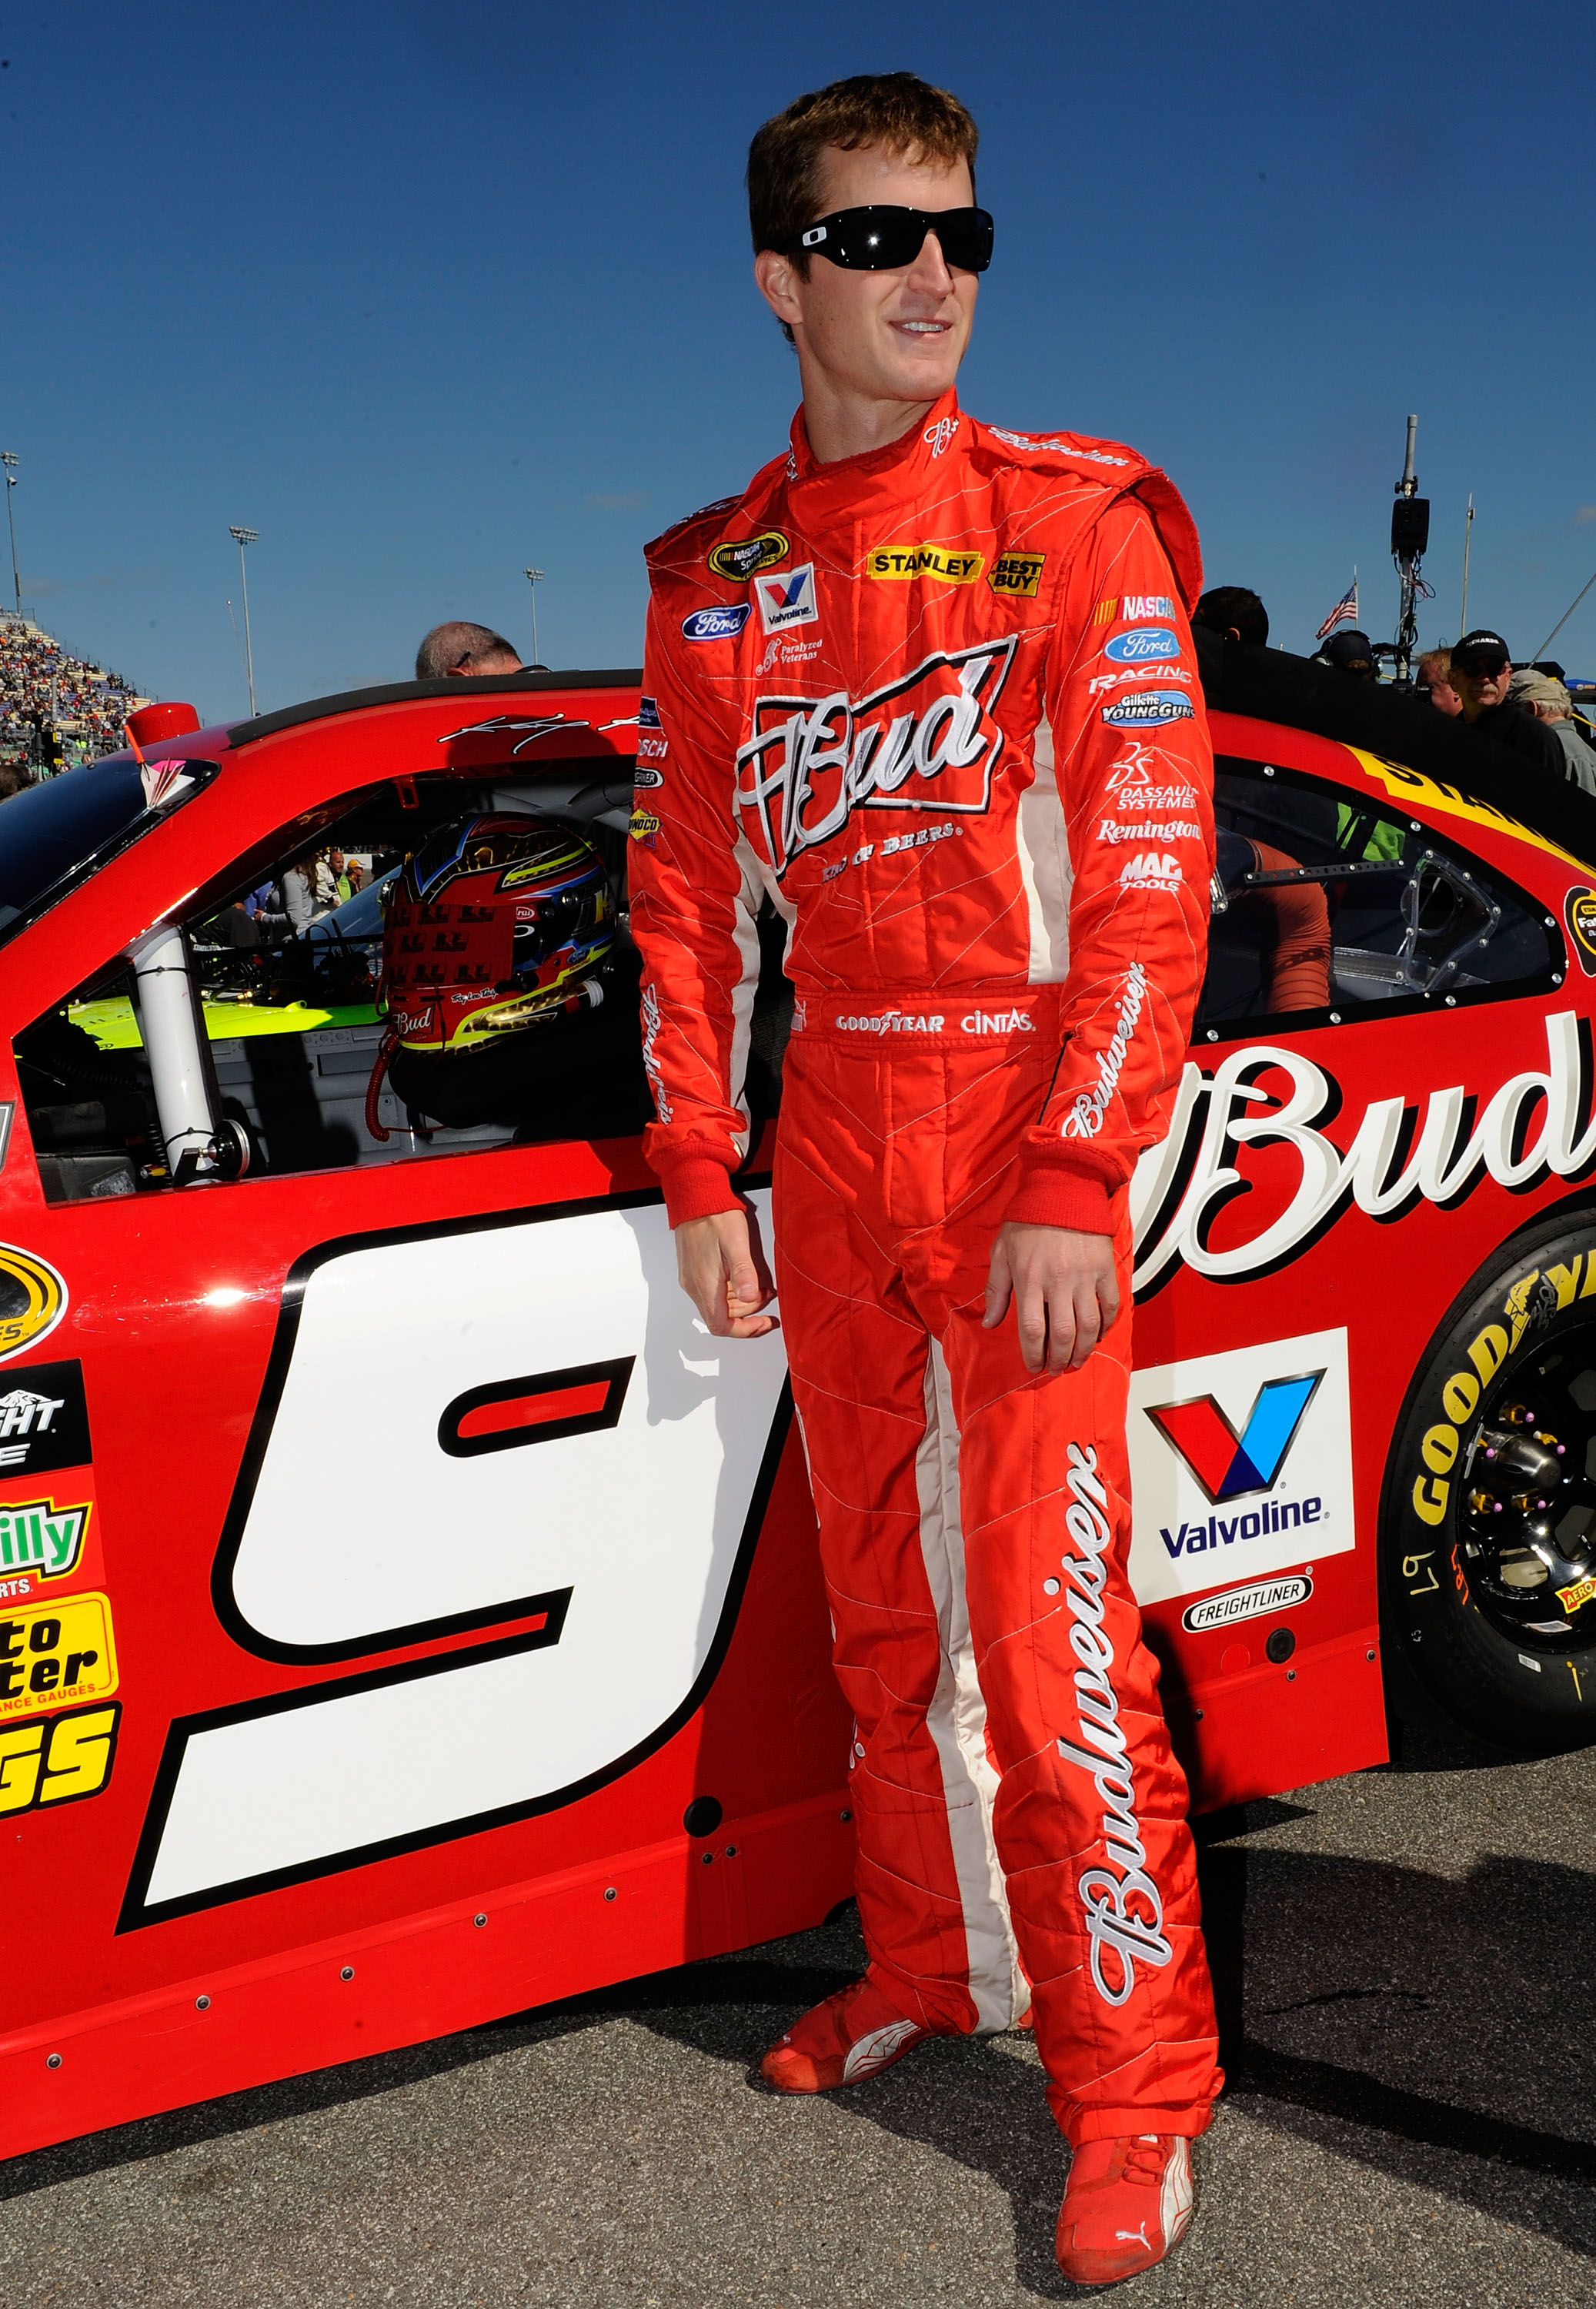 Kasey Kahne has already determined his fate for 2011, with plans to drive a Red Bull Racing Toyota before taking over for Mark Martin at Hendrick Motorsports in 2012.